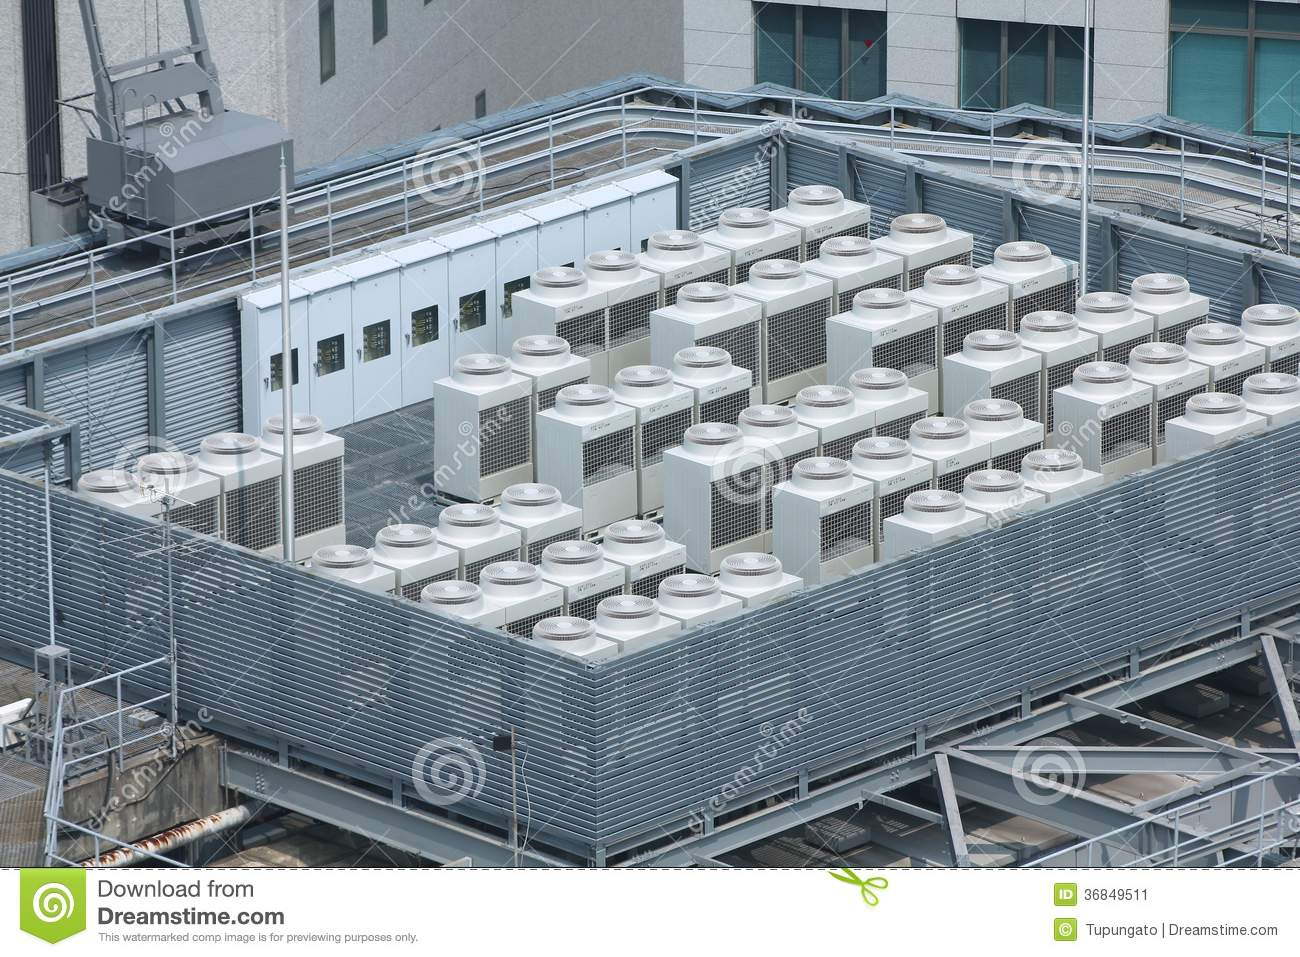 Exhaust vents of industrial air conditioning and ventilation units  #81A229